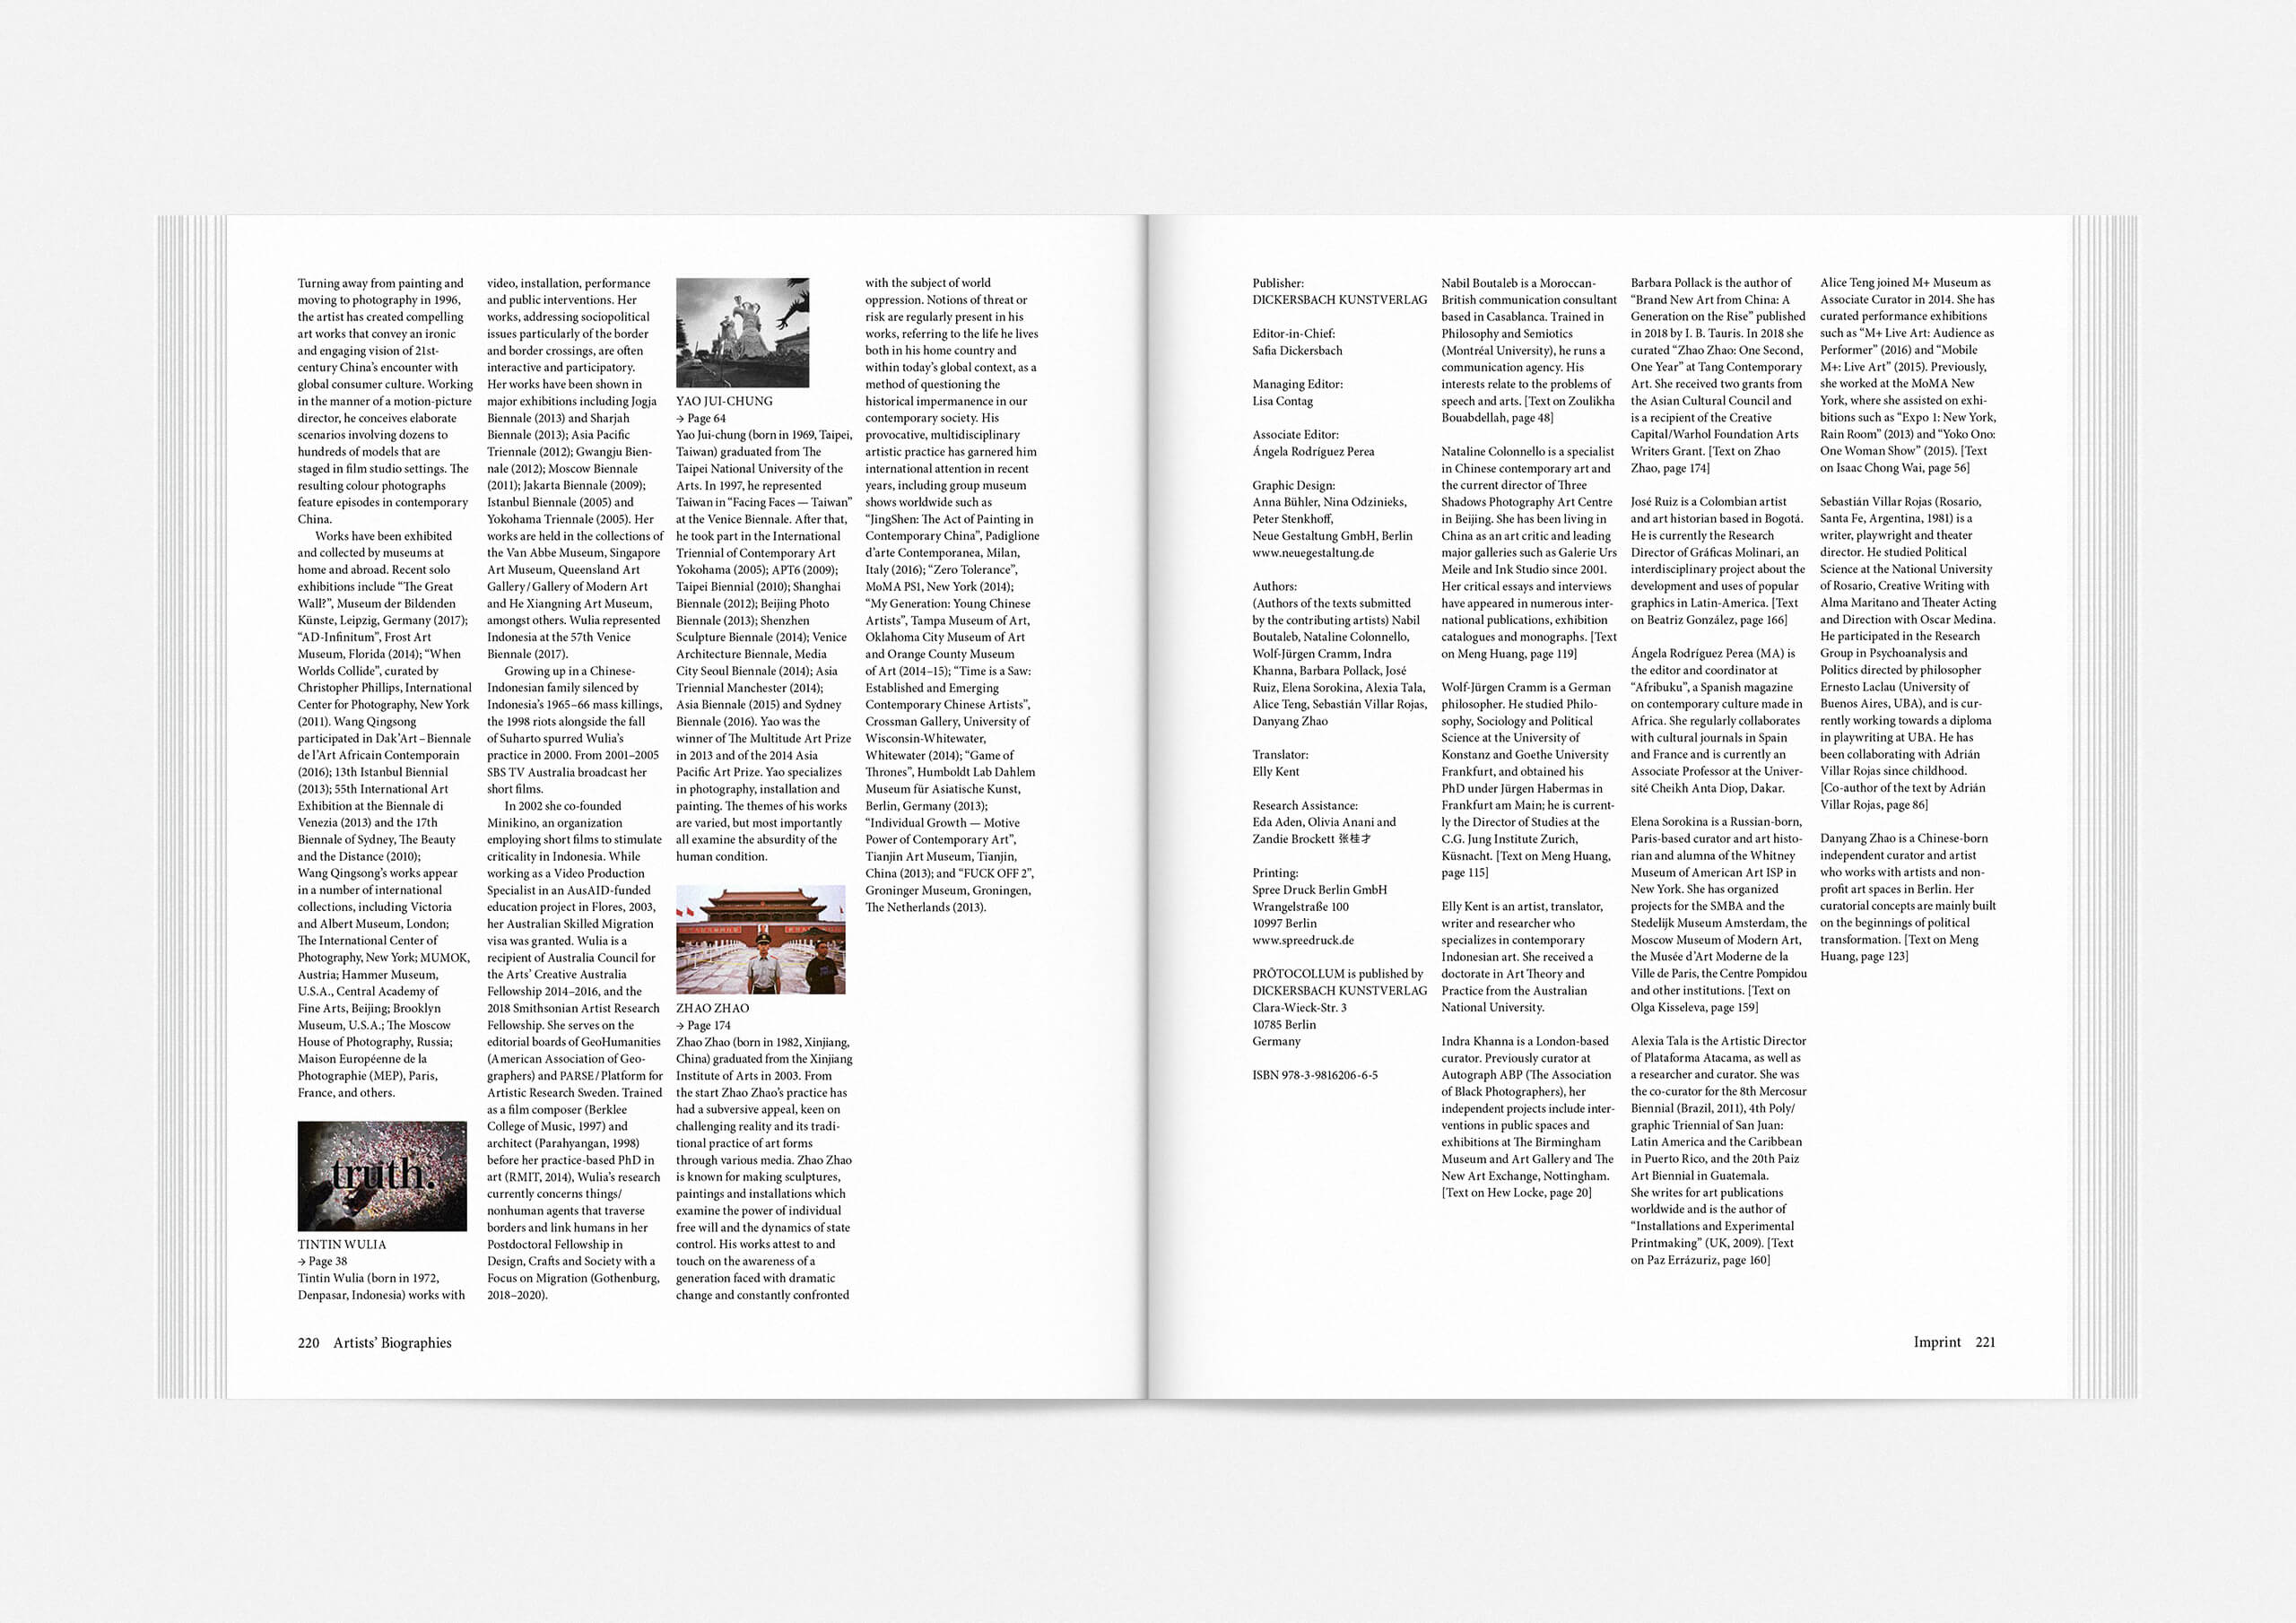 https://neuegestaltung.de/media/pages/clients/protocollum-issue-no-05/2af1623c34-1597415138/protocollum-5-page-220221-ng.jpg